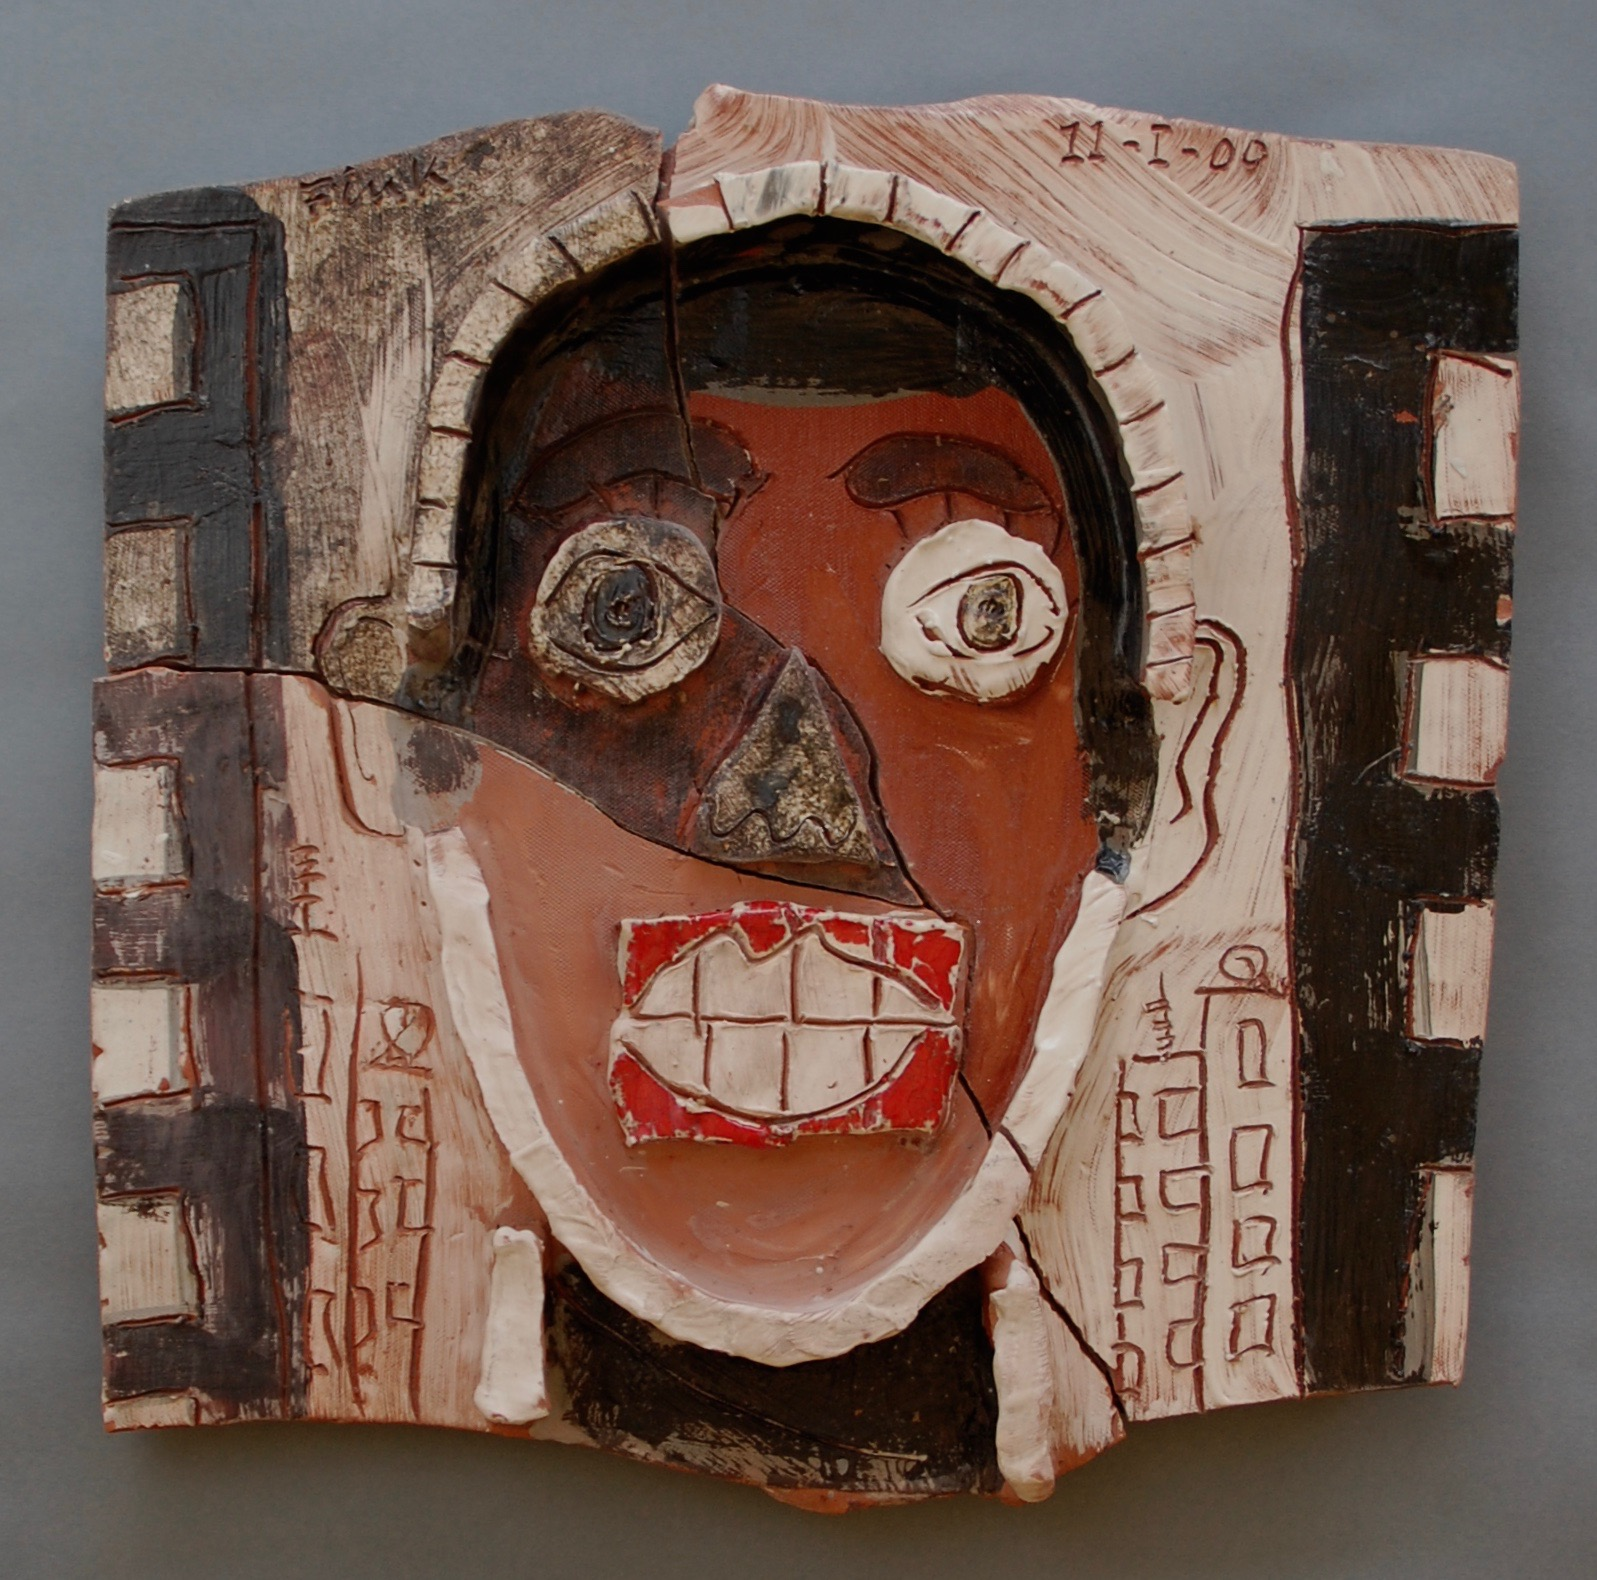 Fragmented head of a man, 1999